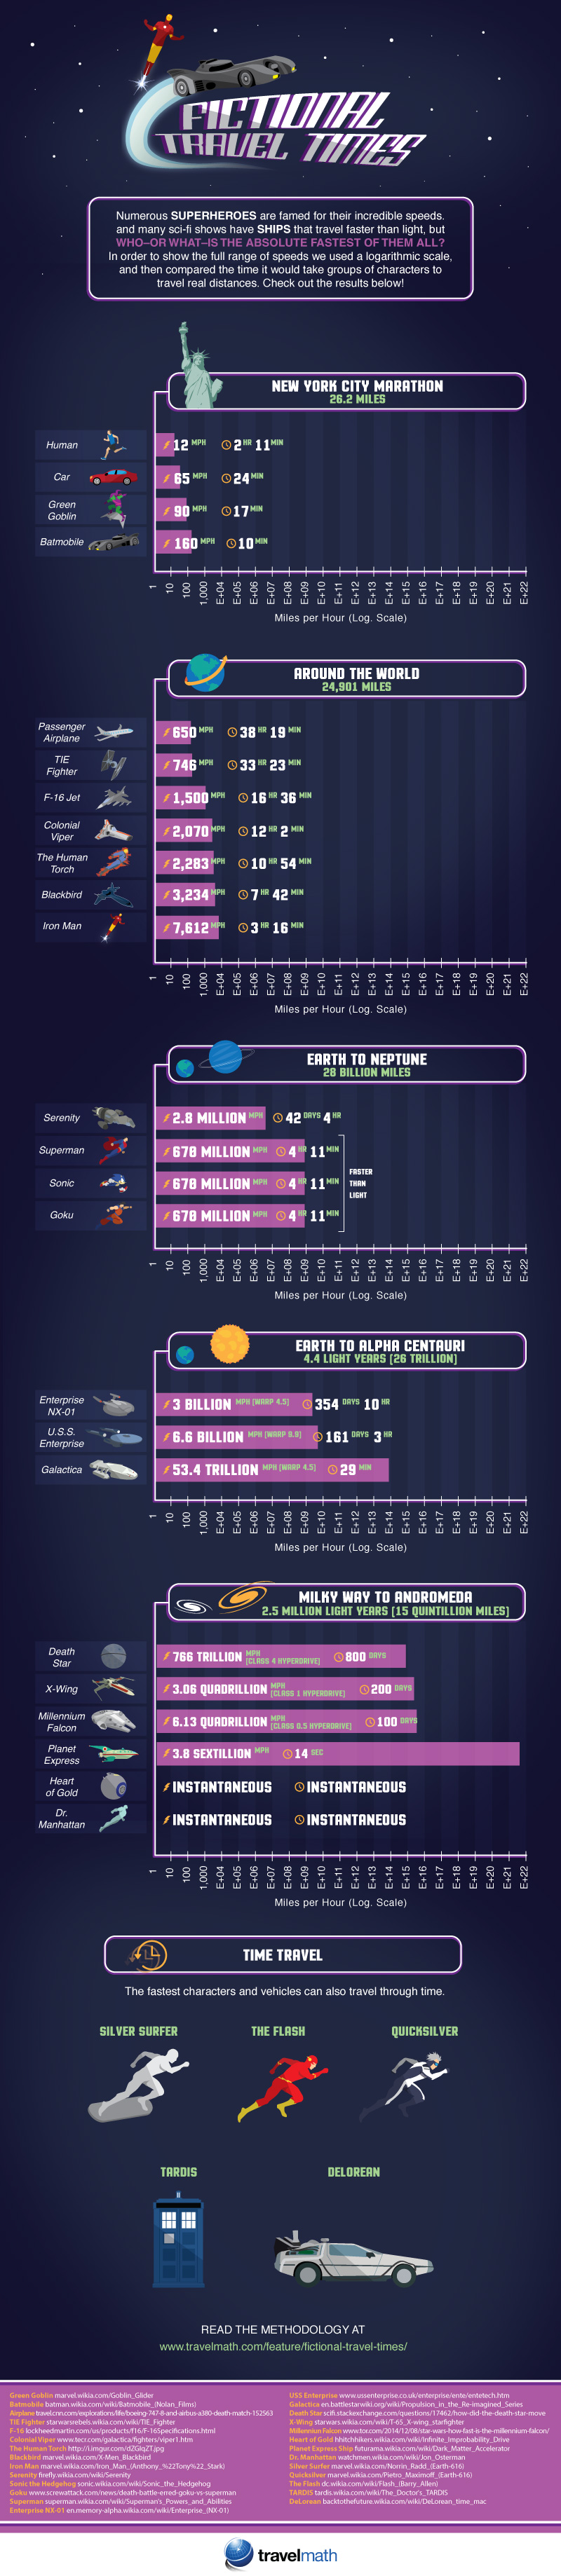 Fictional Travel Times Infographic